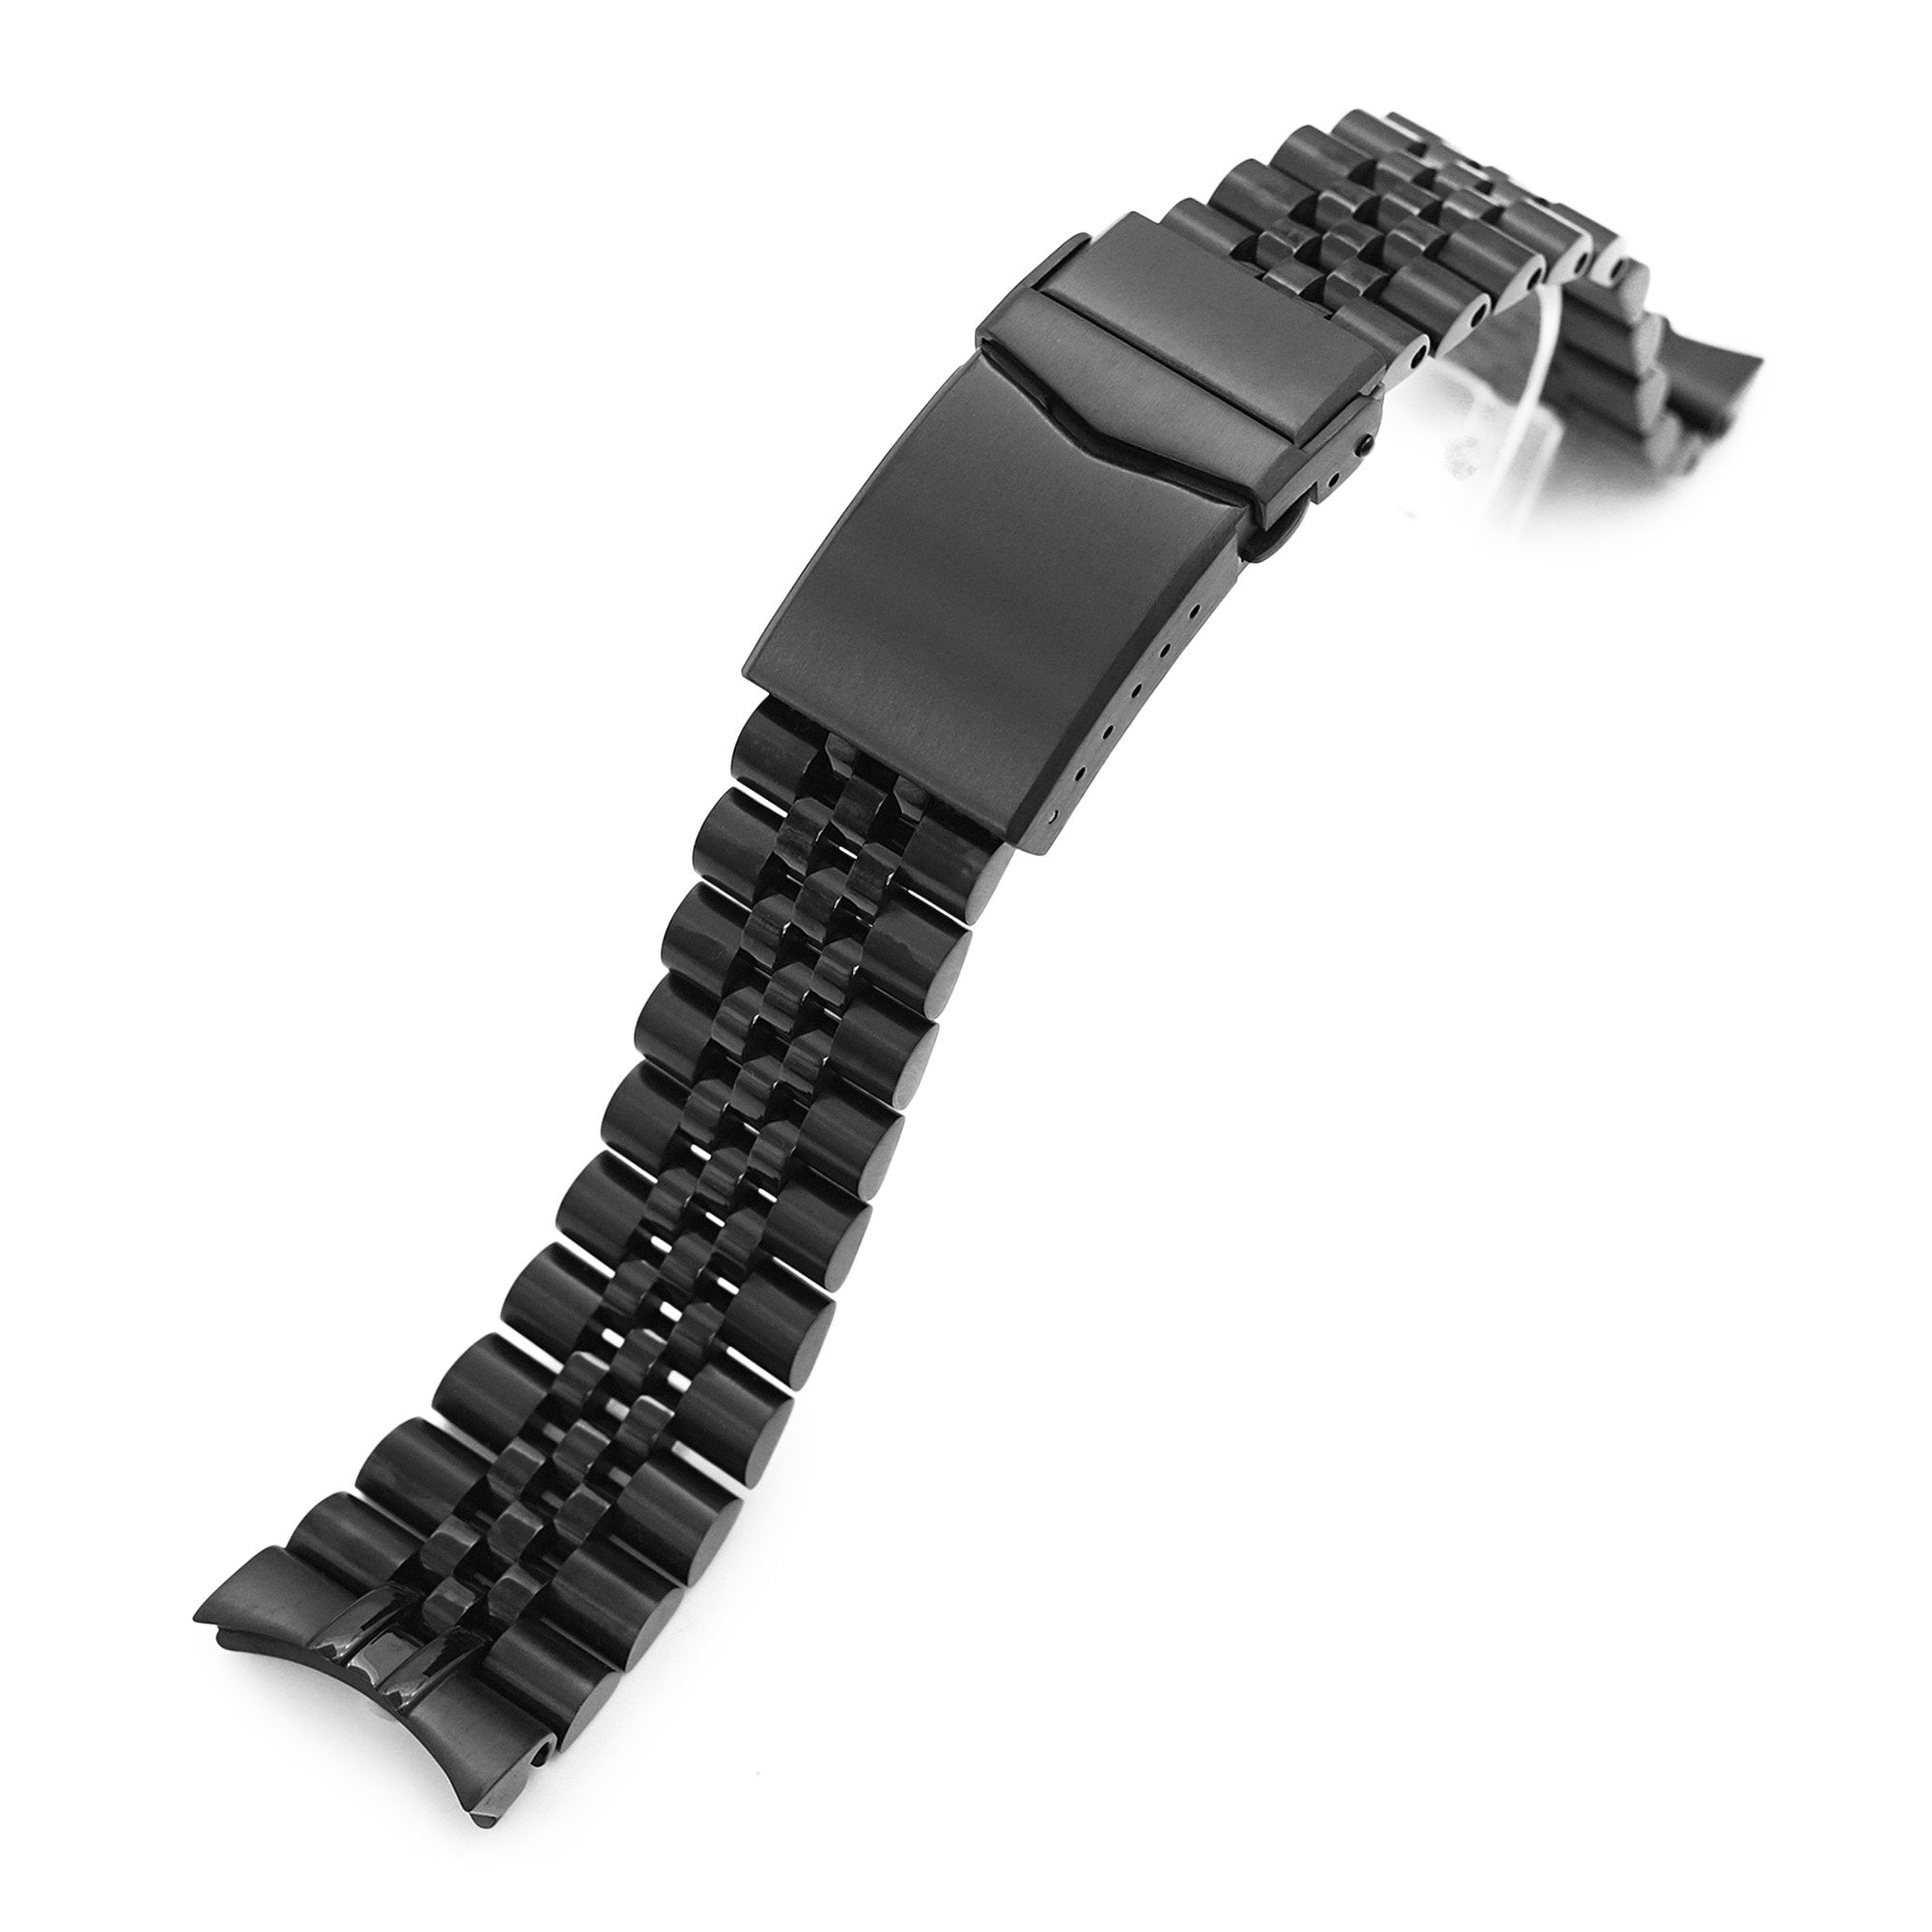 22mm Super-J Louis JUB 316L Stainless Steel Watch Band for Orient Kamasu, Diamond-like Carbon (DLC Black) V-Clasp Strapcode Watch Bands